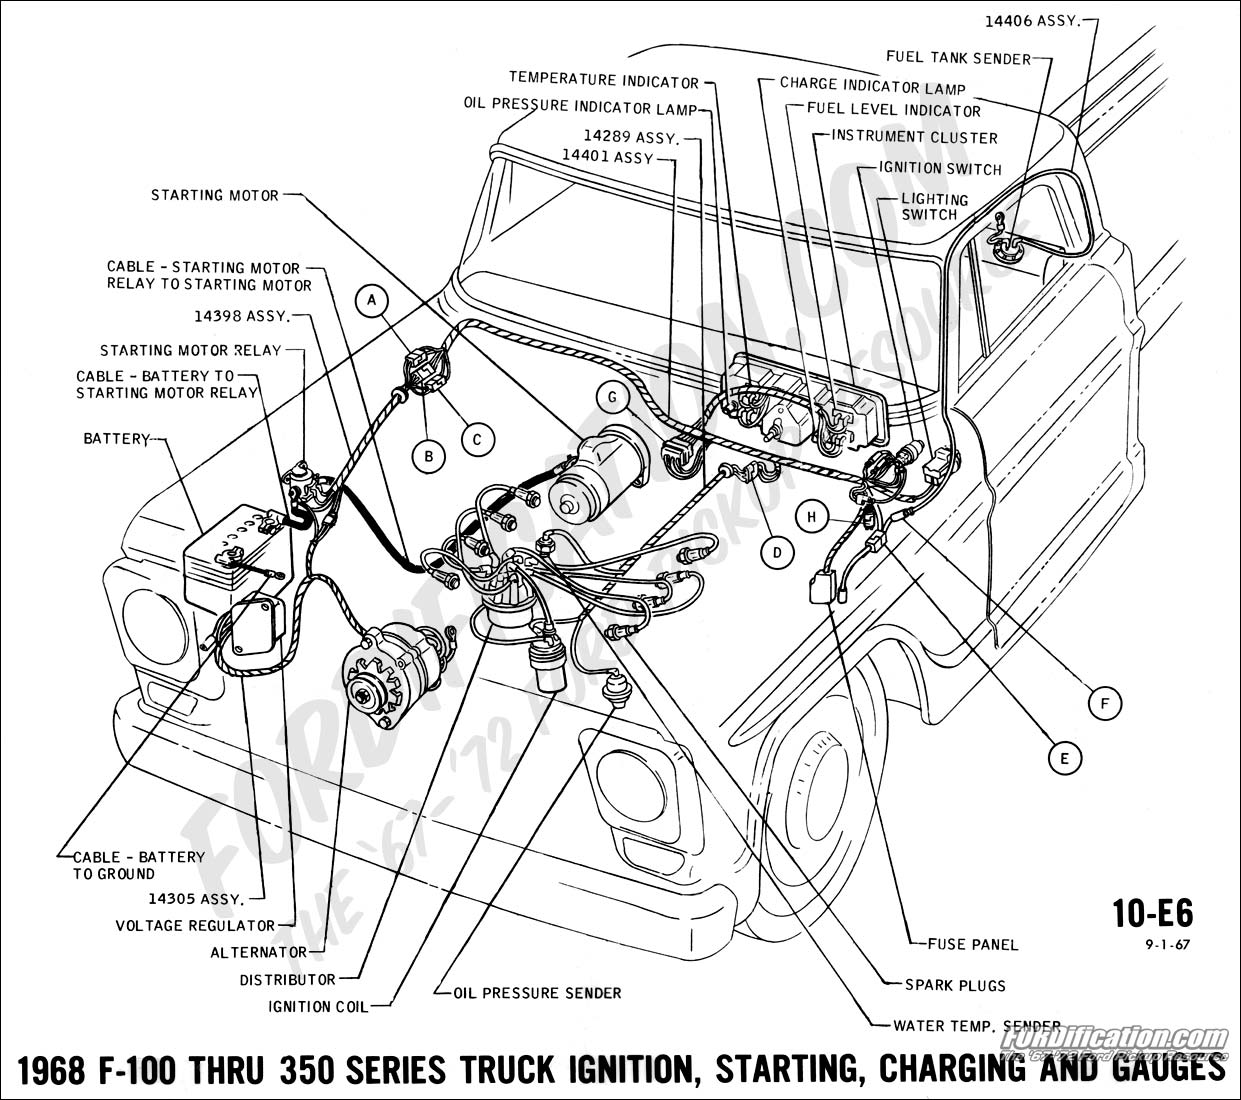 552ty Acura Tl Remove Starter 04 Acura Tl furthermore 2000 Vw Golf Fuse Diagram as well 1999 Subaru Forester Fuse Box Diagram besides 2002 Acura Rsx Fuse Box Diagram furthermore 2000 Toyota Echo Fuse Box. on acura rsx radio wiring diagram